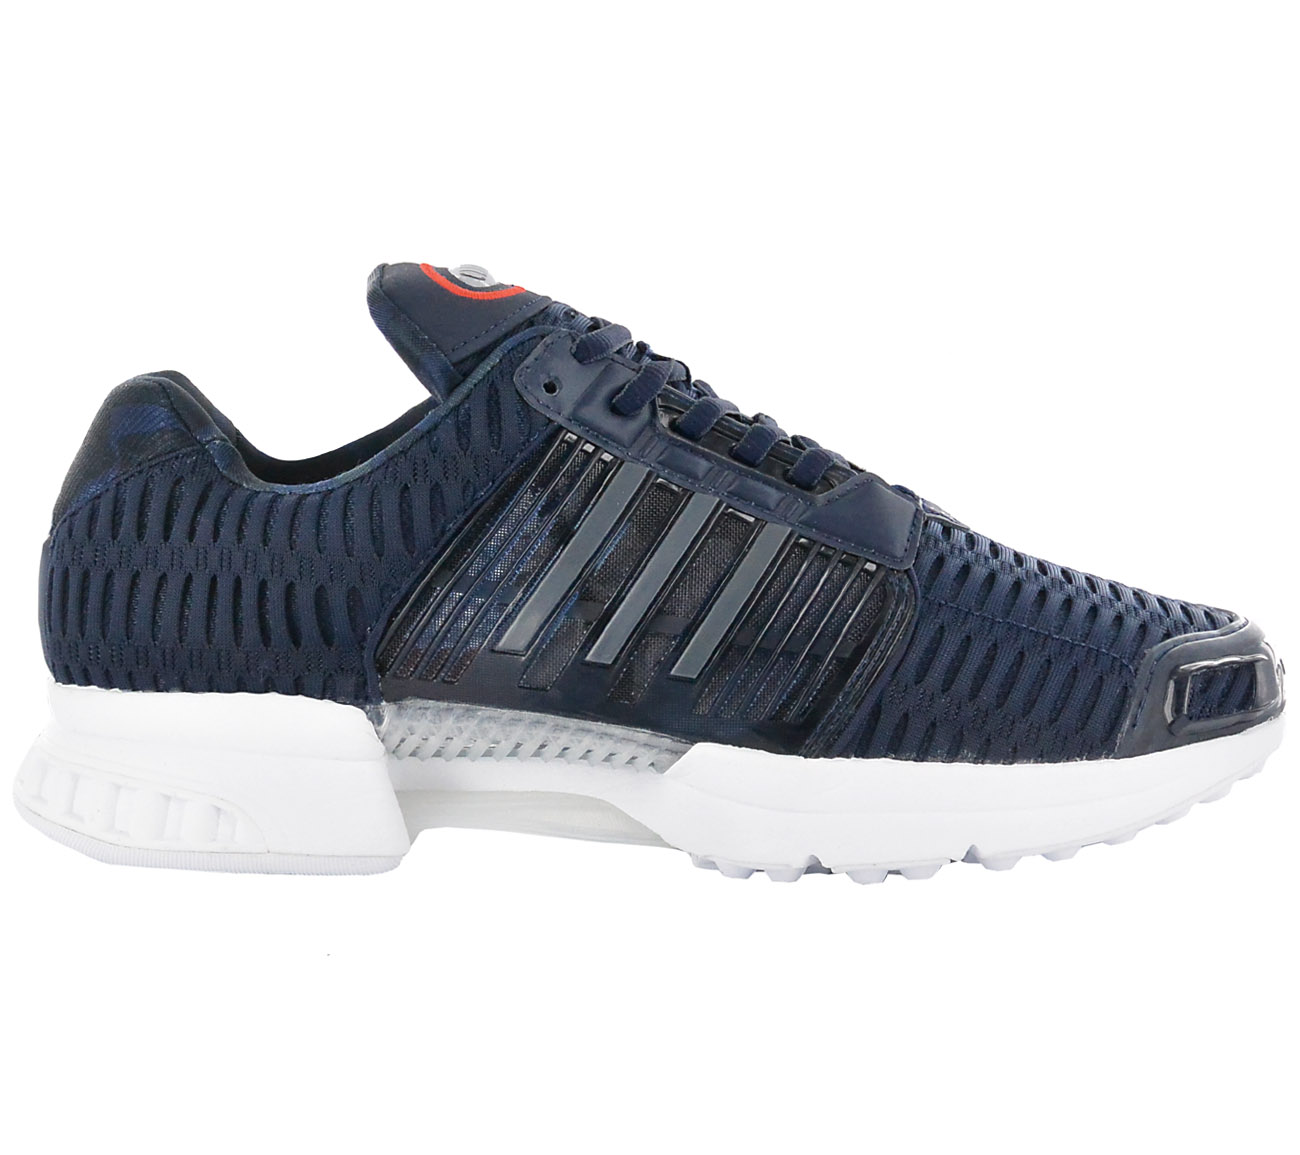 Adidas Men s Sneakers Climacool 1 Shoes Navy Blue Trainers Clima ... 054e5a0fd